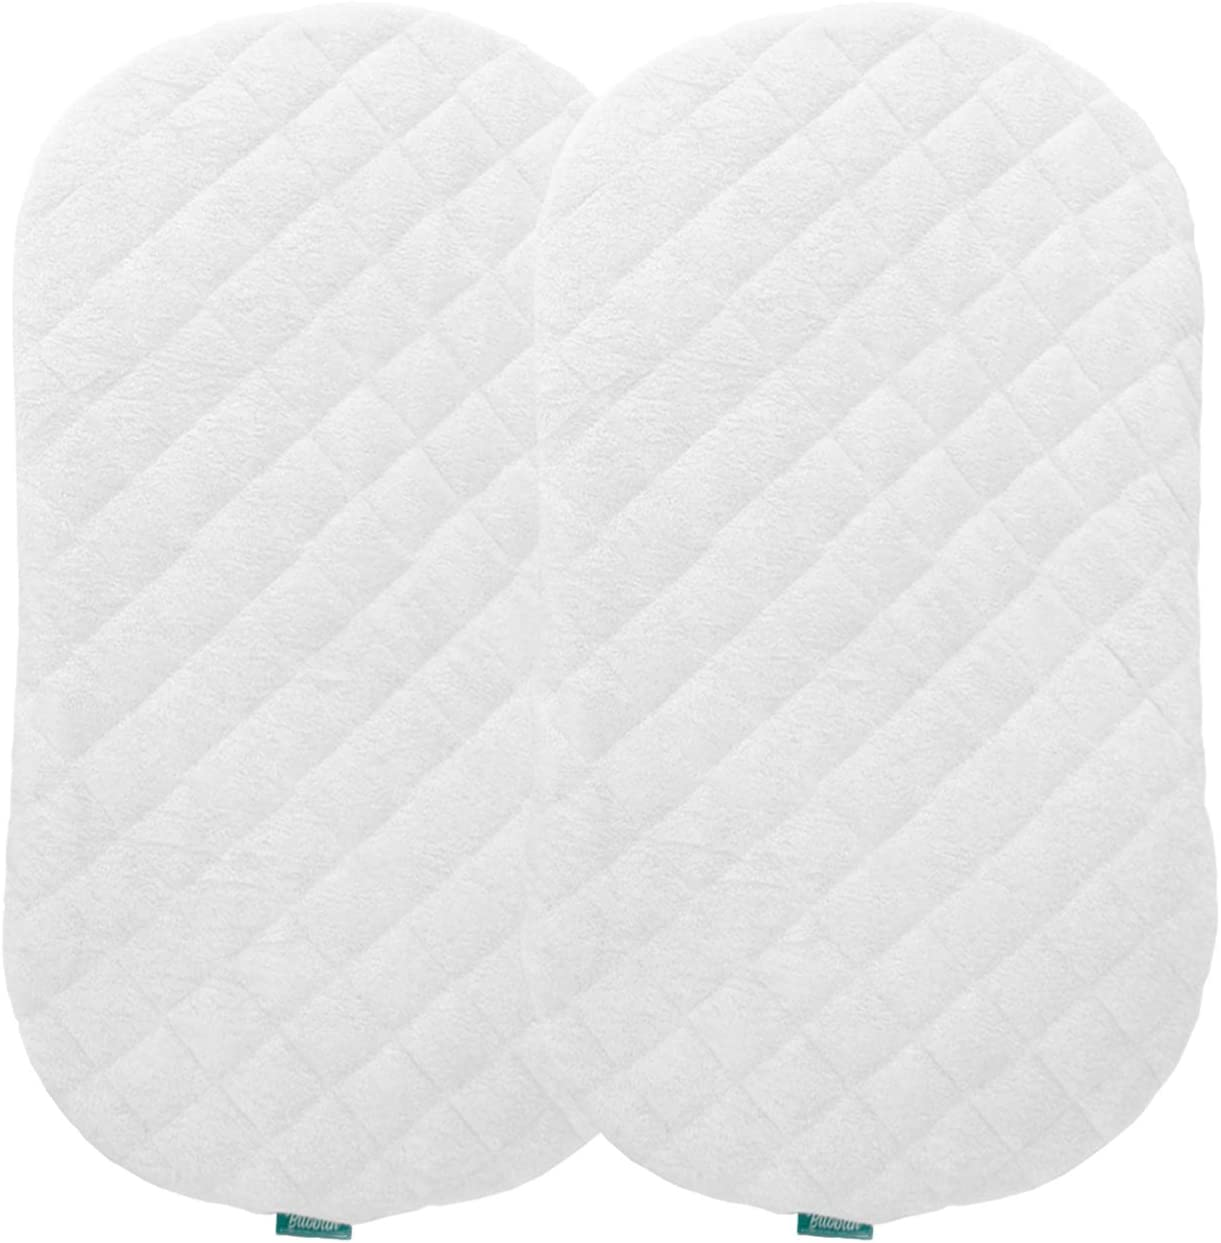 Bassinet Mattress Pad Cover Improved Style Waterproof Fit For Hourglass Oval Bassinet Mattress 2 Pack Ultra Soft Bamboo Fleece Surface Washer Dryer No Loosen And Pre Shrinked Baby